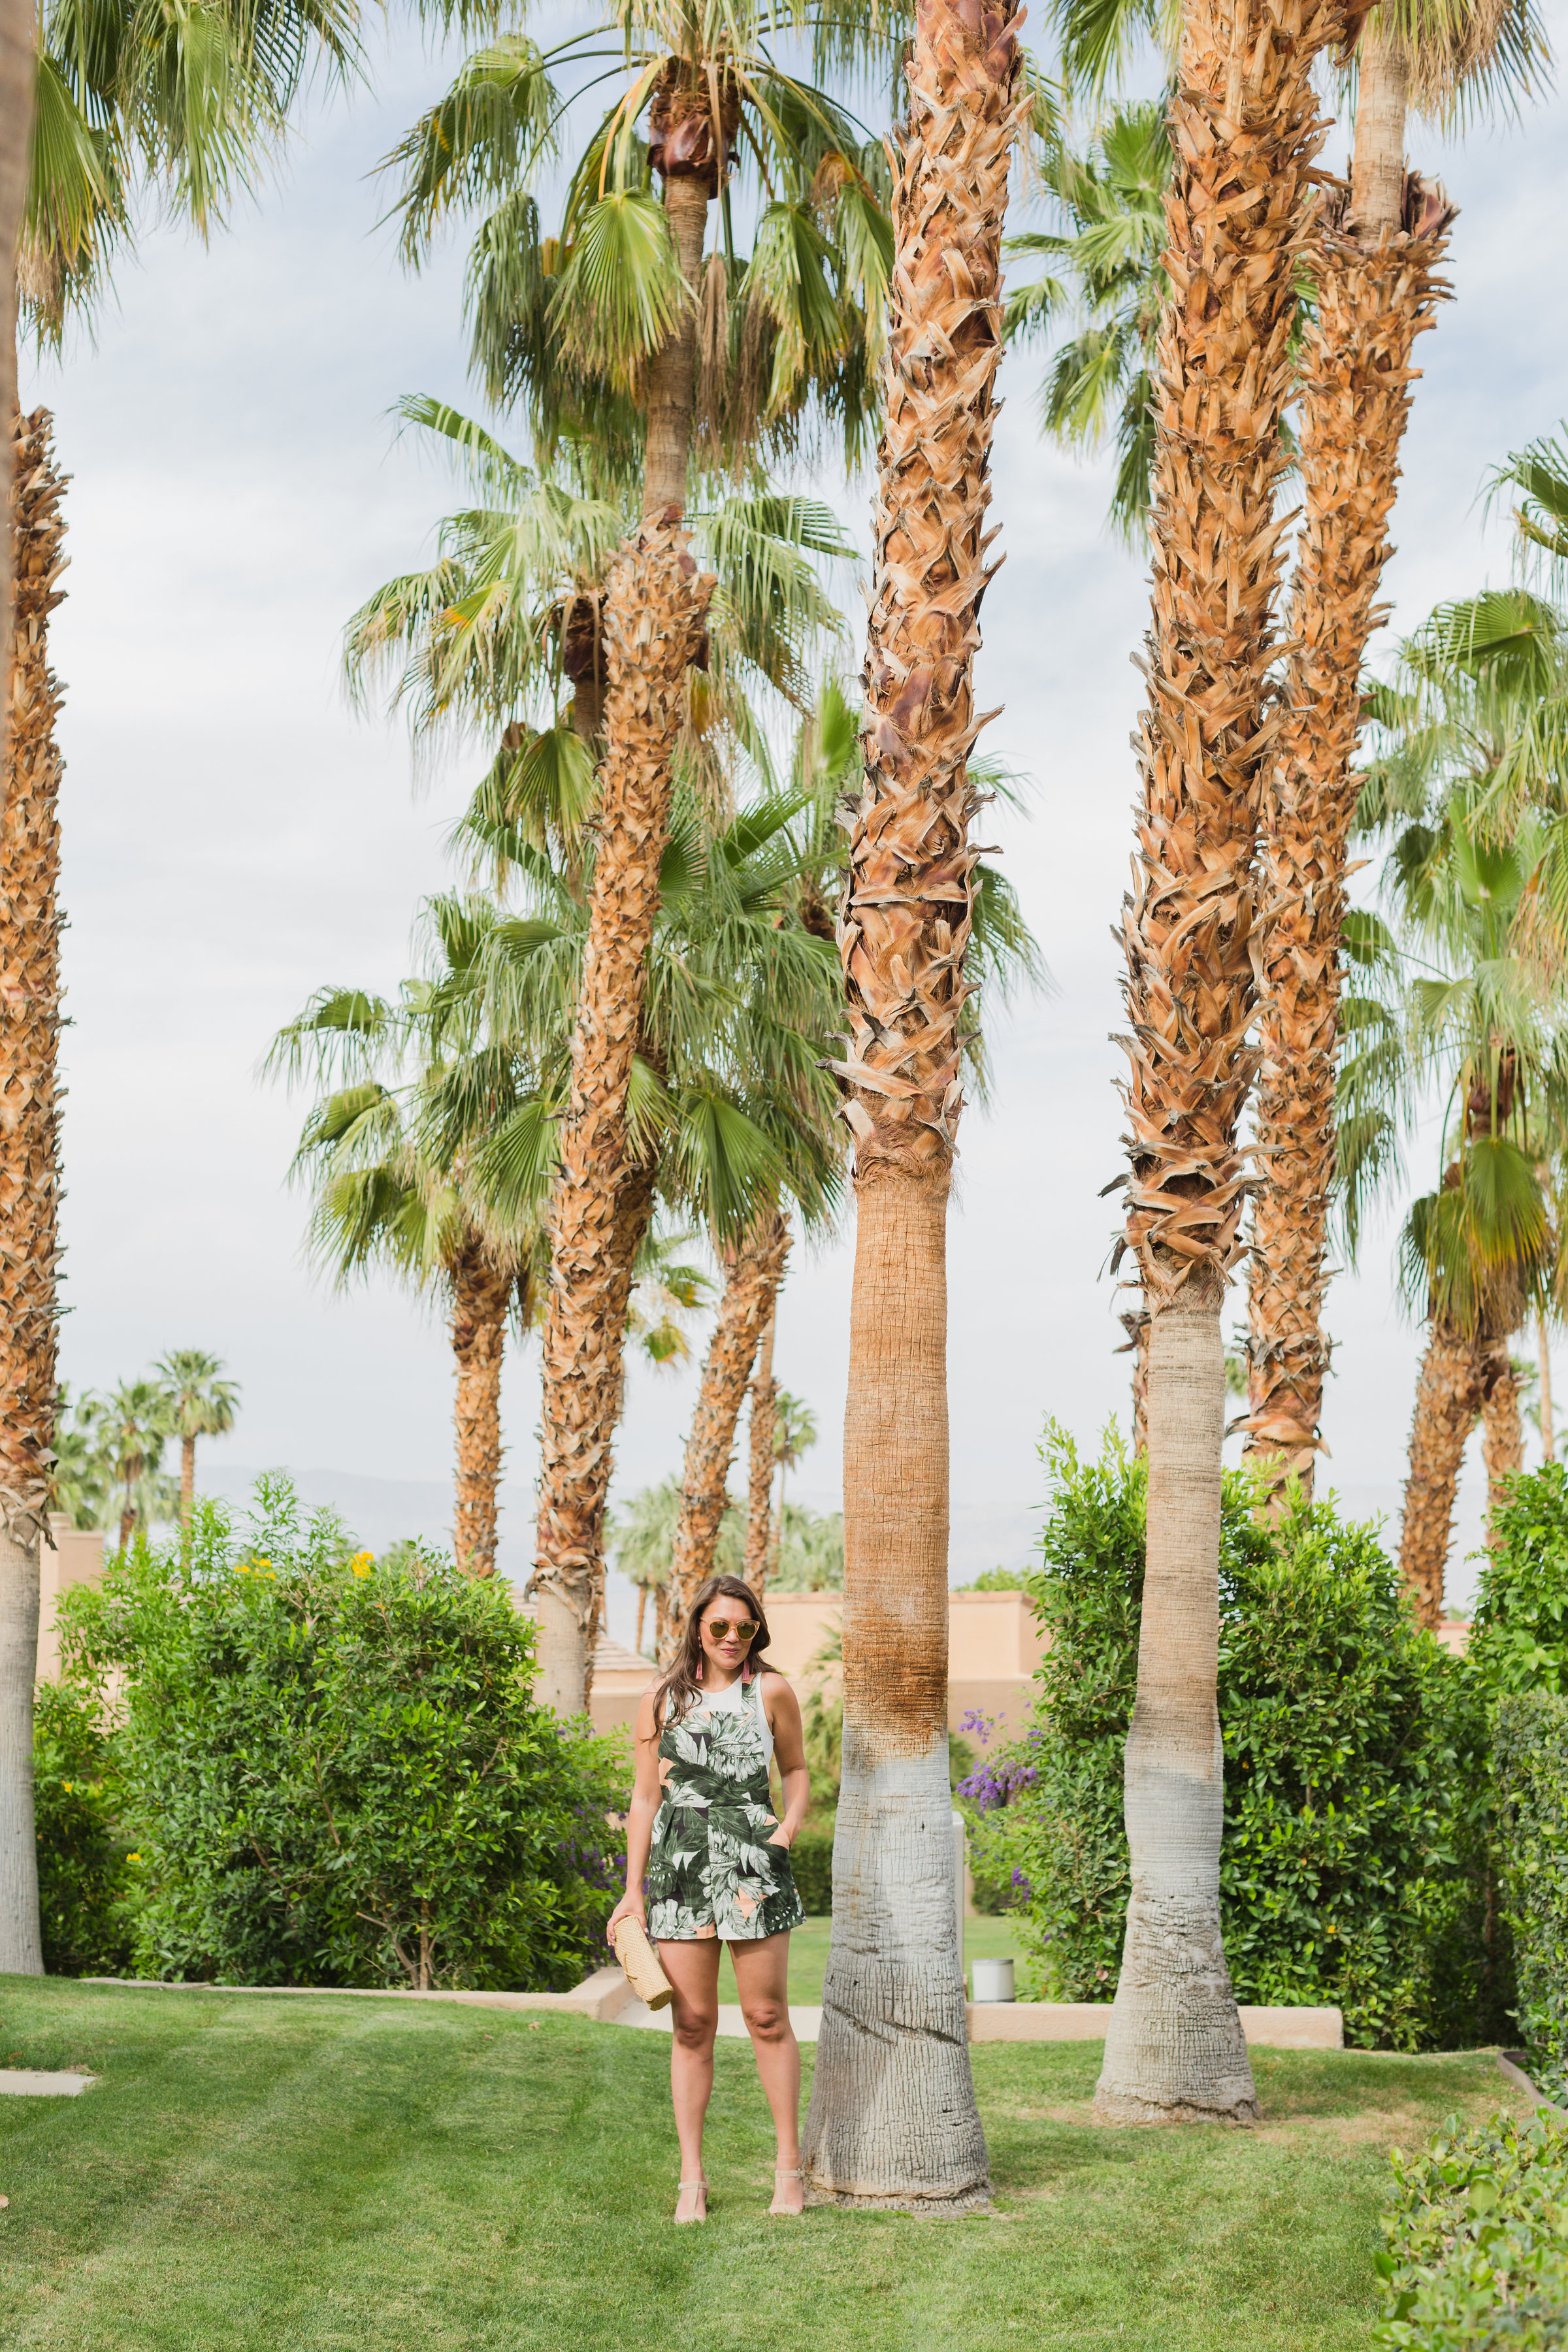 Photography: Erica Mendenhall // Location: Palm Springs, CA